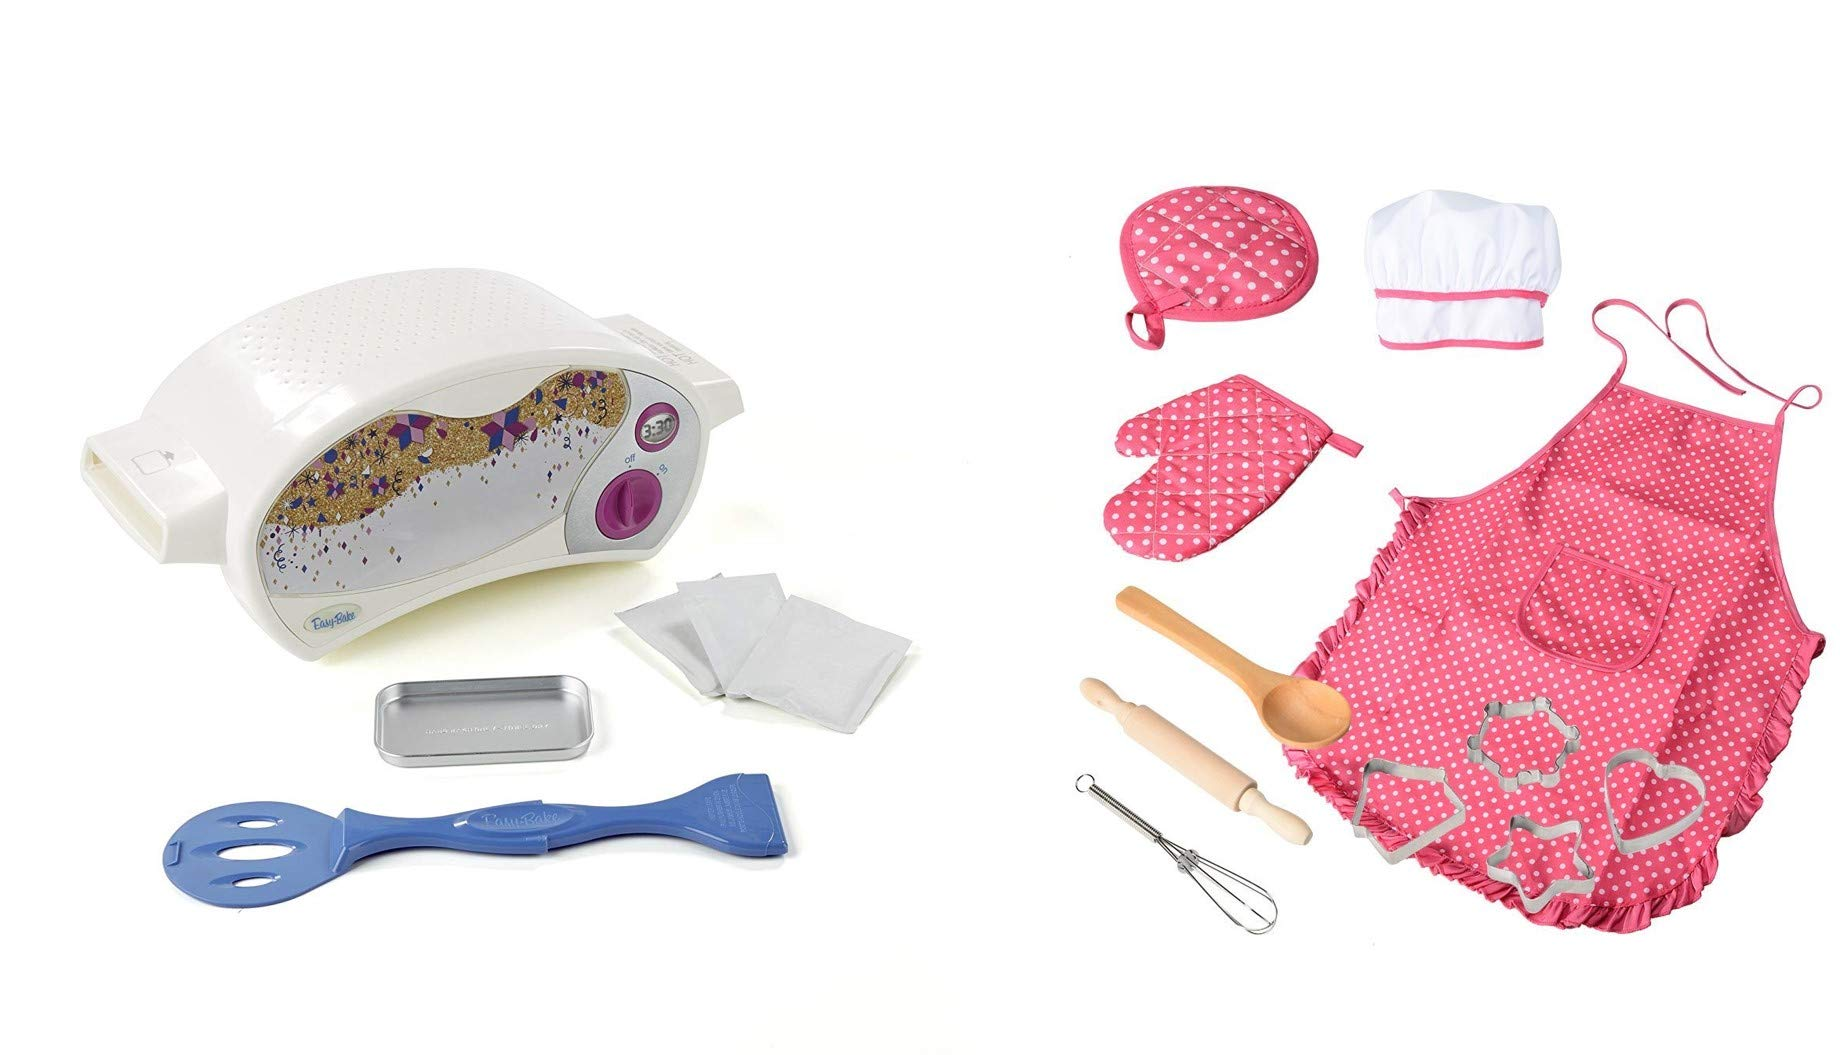 Easy Bake Oven 11 Pc Chef Set Bundle - Apron, Chef Hat, Oven Mits and Accessories Included